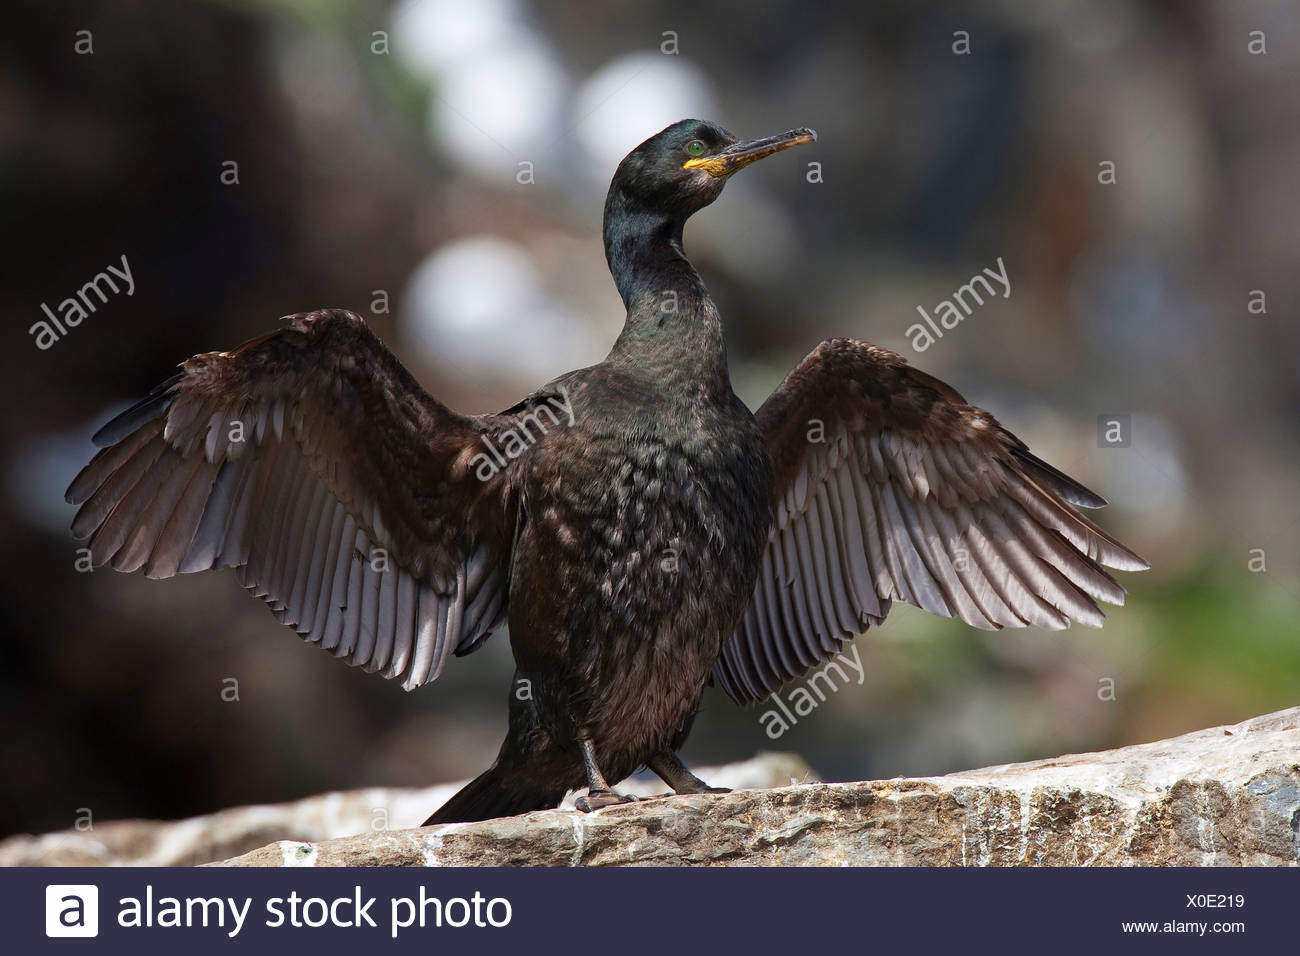 shag (Phalacrocorax aristotelis), drying its wings, Germany Stock Photo